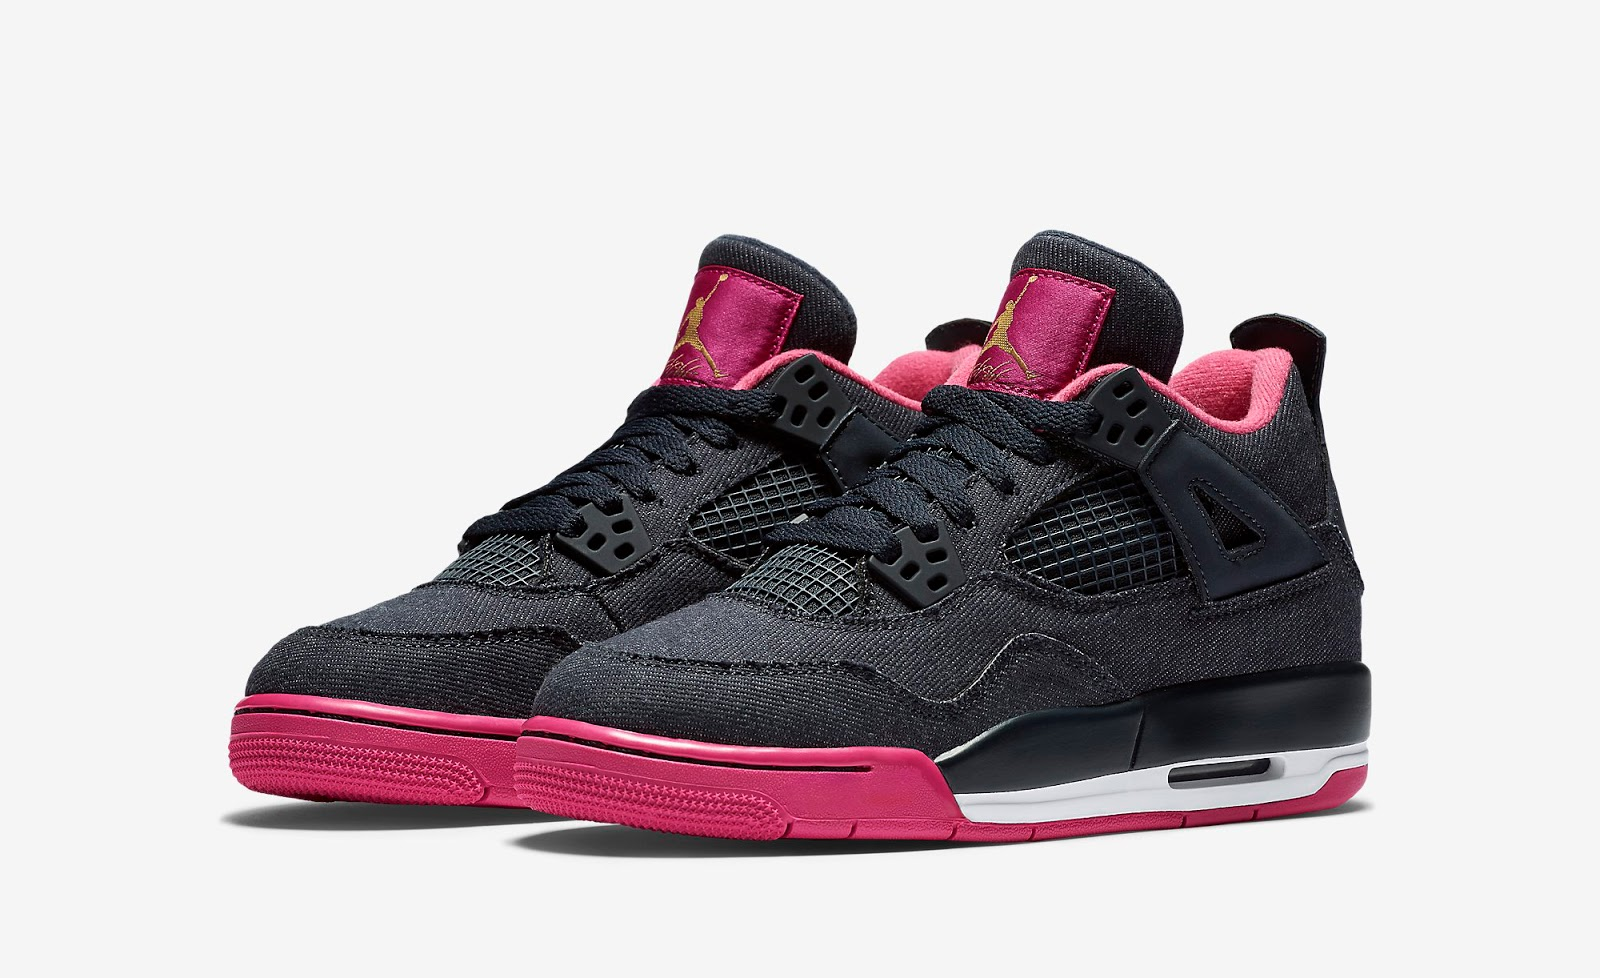 best loved c7065 657b3 ... spain ladies the latest colorway of the air jordan 4 retro hits stores  this weekend.